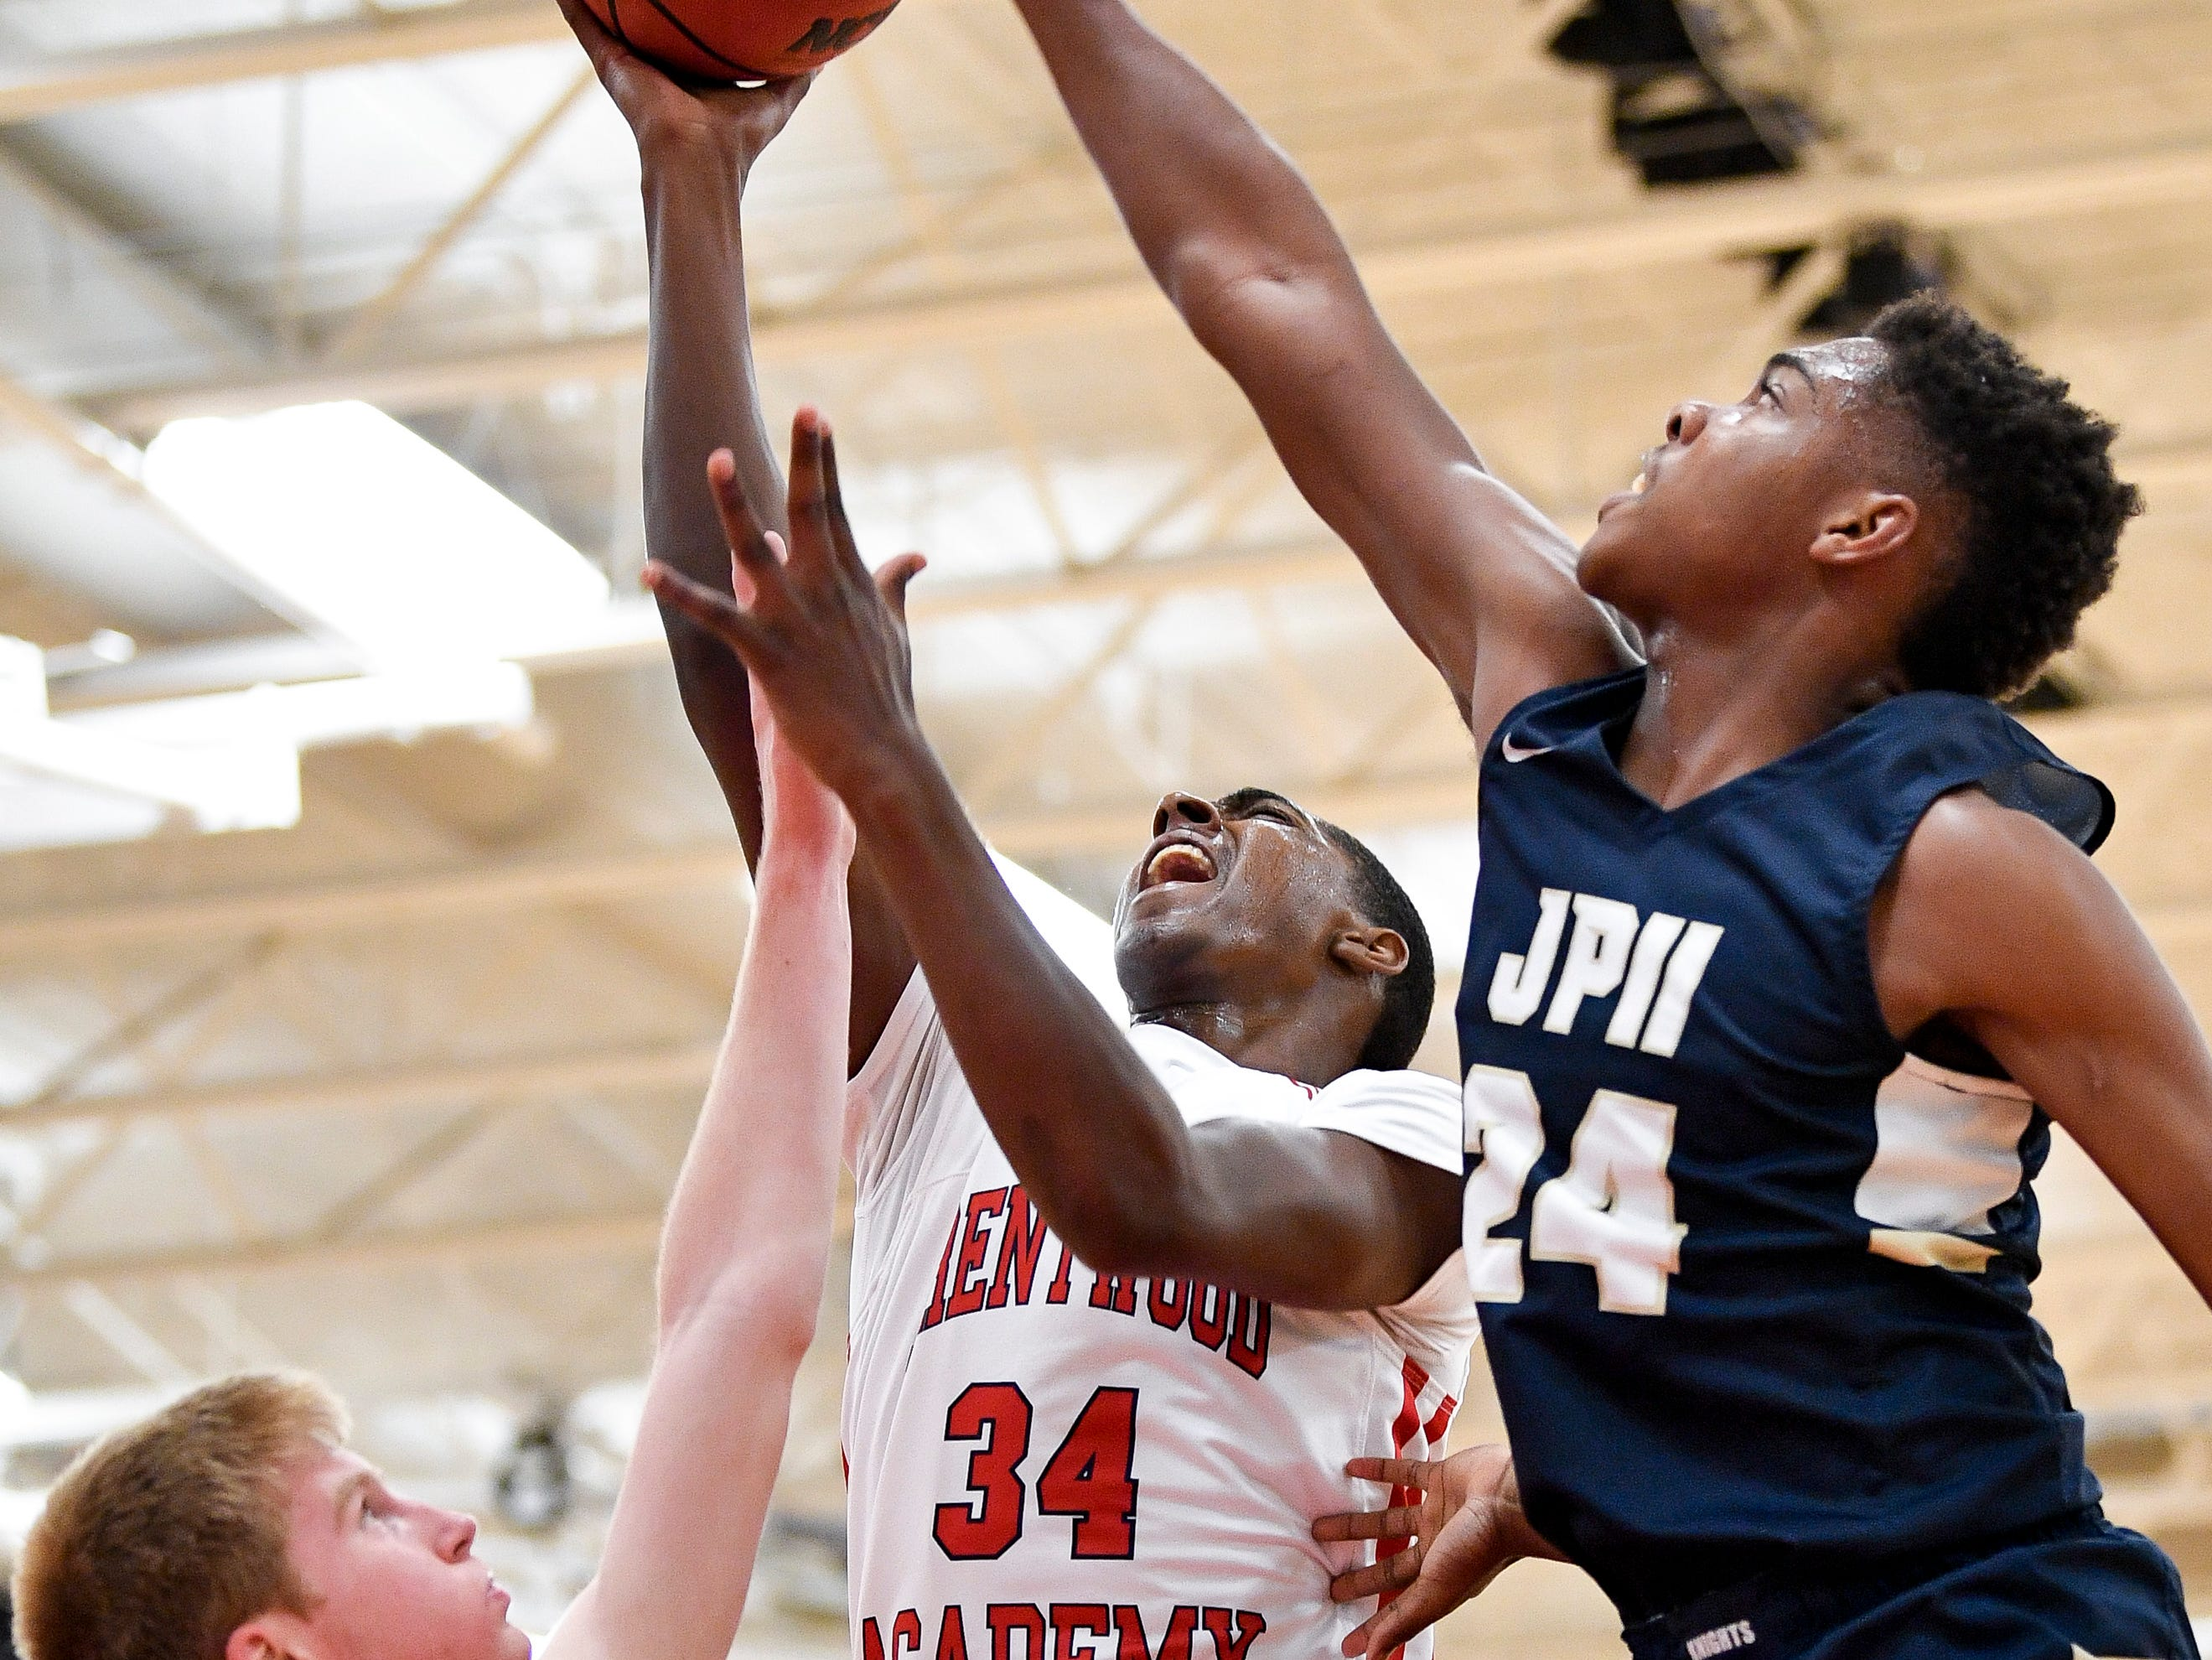 Brentwood Academy's Randy Brady (34) battles Pope John Paul II's Michael Martini (1) and Ben Nixon (24) during the first half at Brentwood Academy in Brentwood, Tenn., Friday, Jan. 4, 2019.